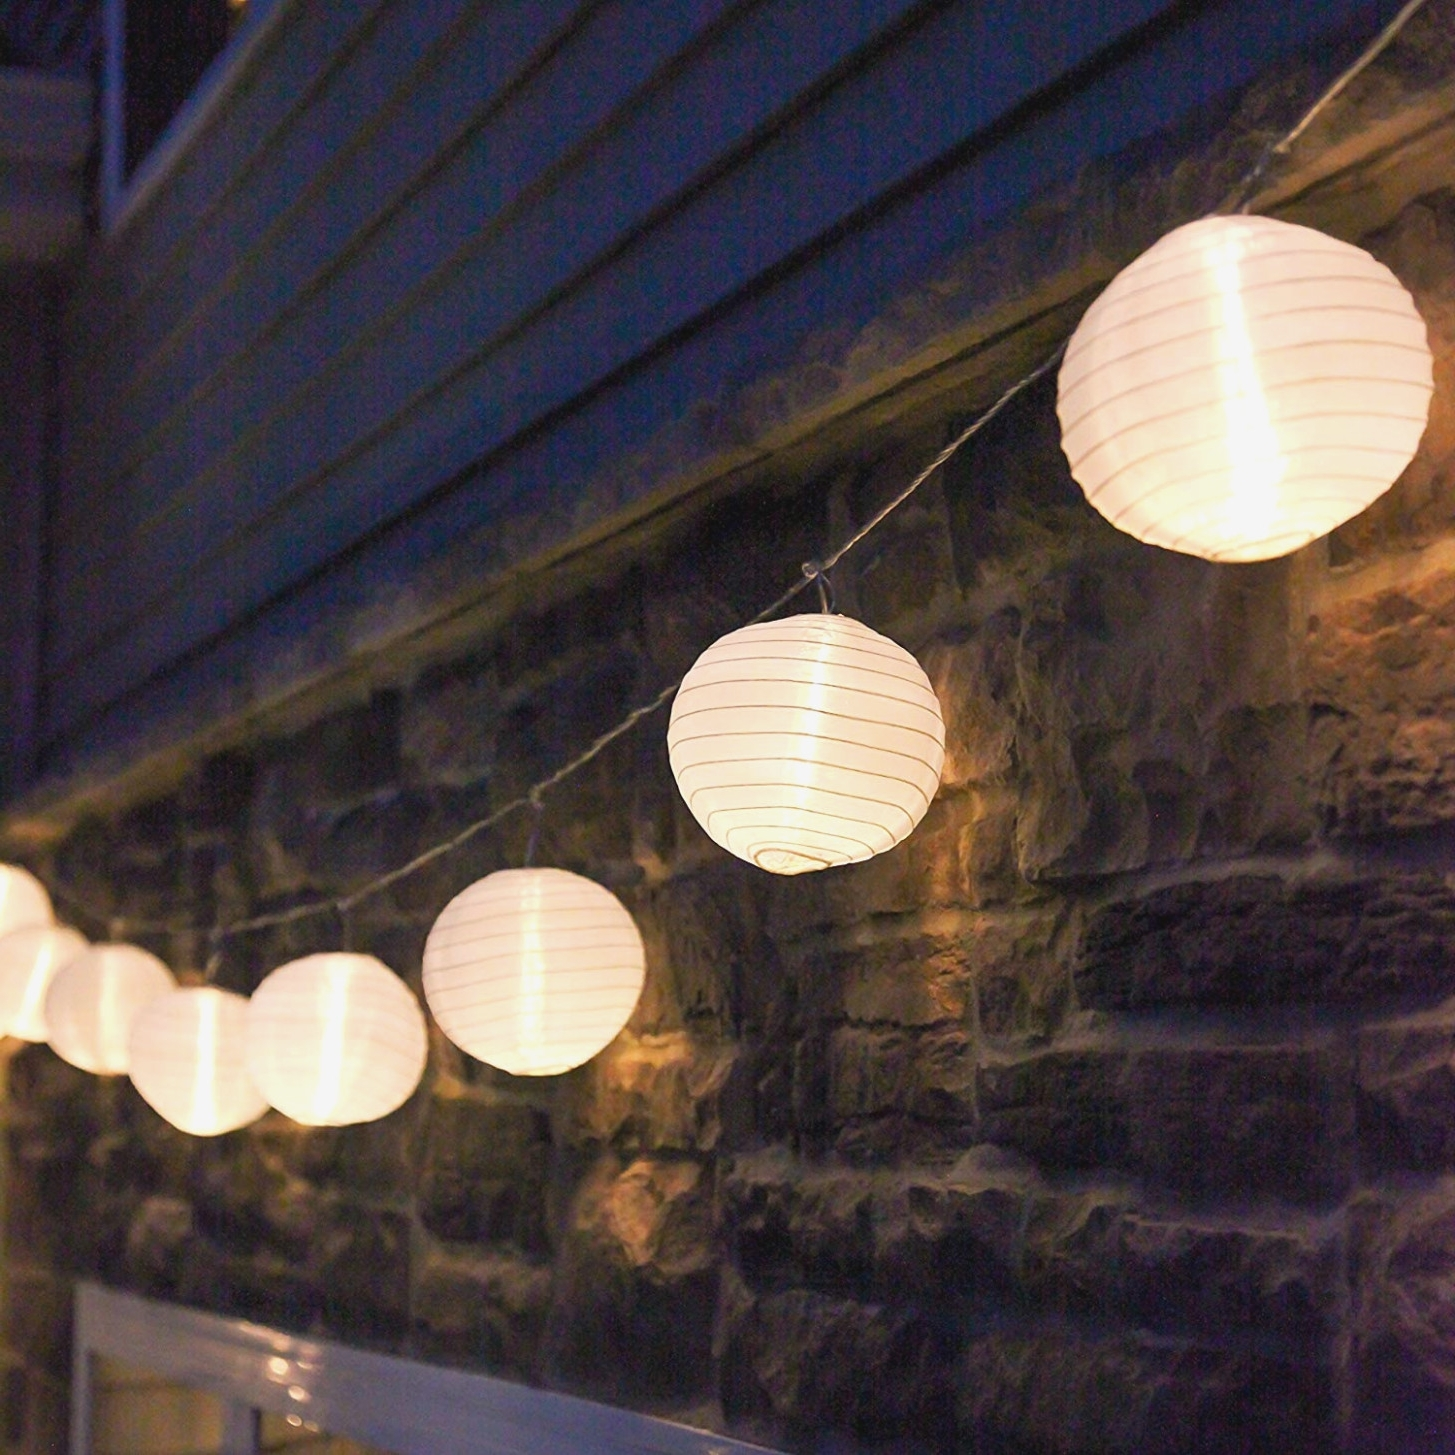 2019 Outdoor Chinese Lanterns For Patio With Amazon: 40 Ft. White Outdoor String Light, 40 Mini Lanterns, 40 (Gallery 18 of 20)